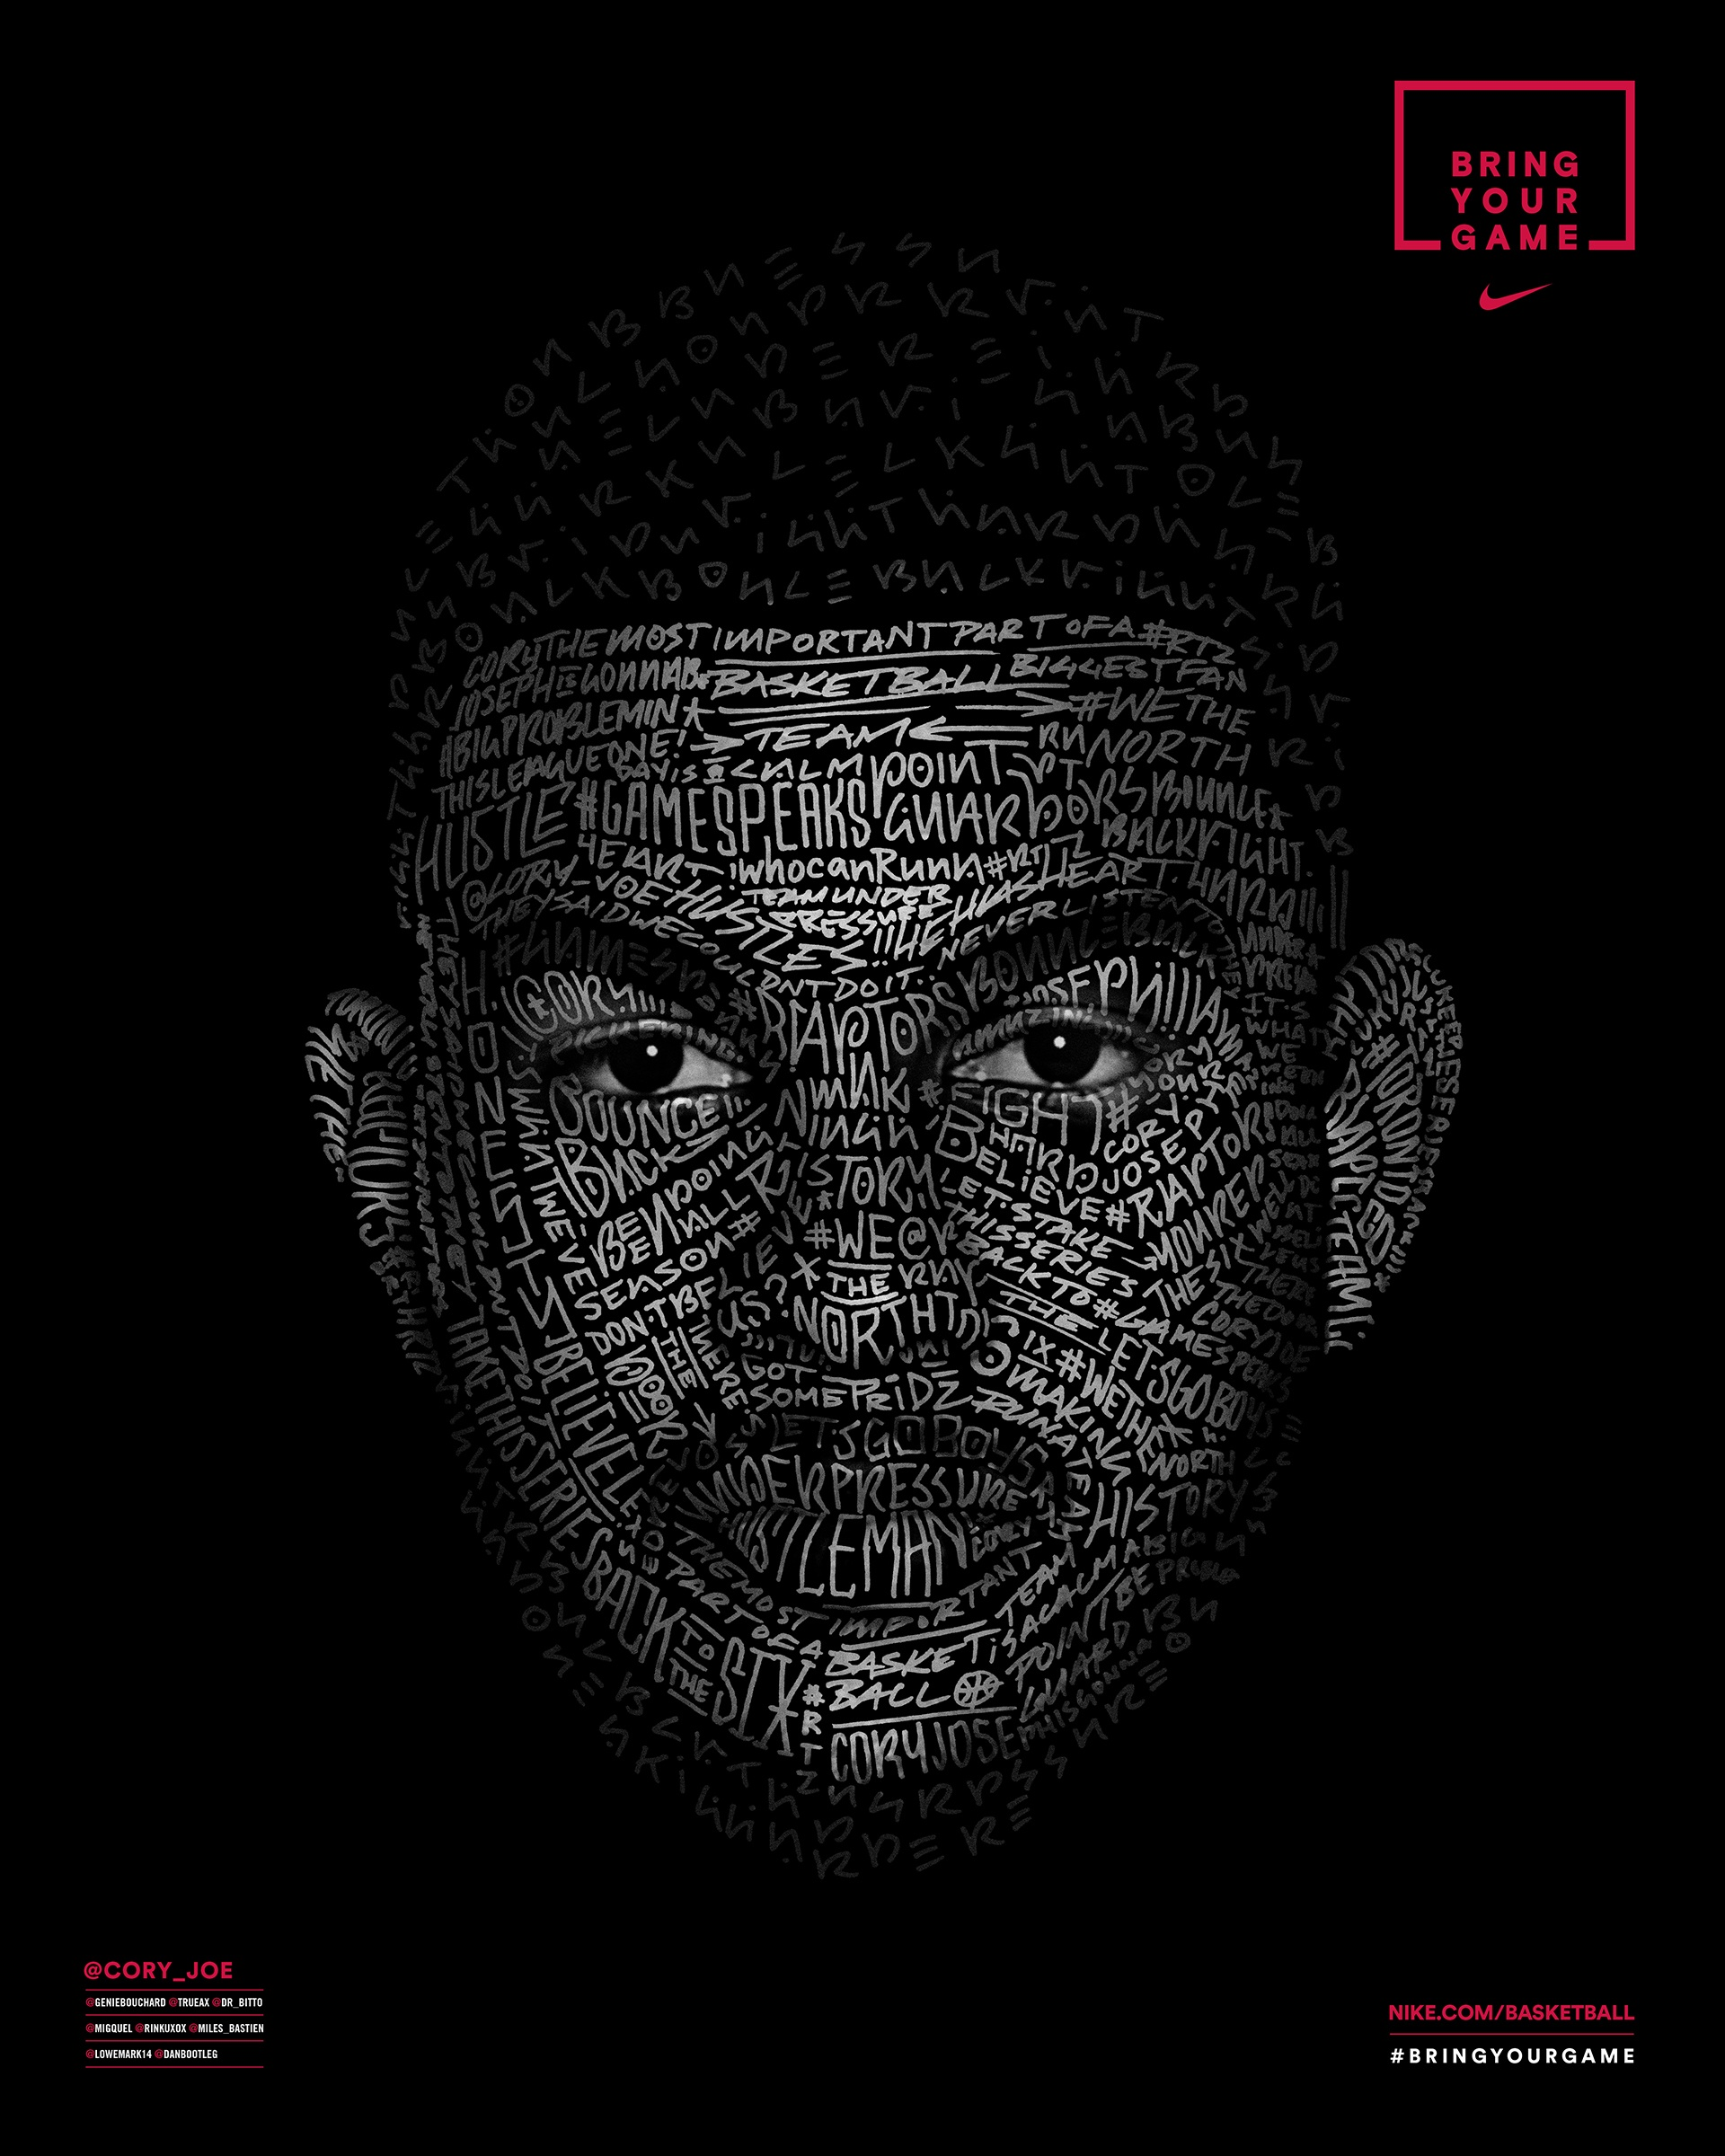 Thumbnail for Nike Face of the Fans